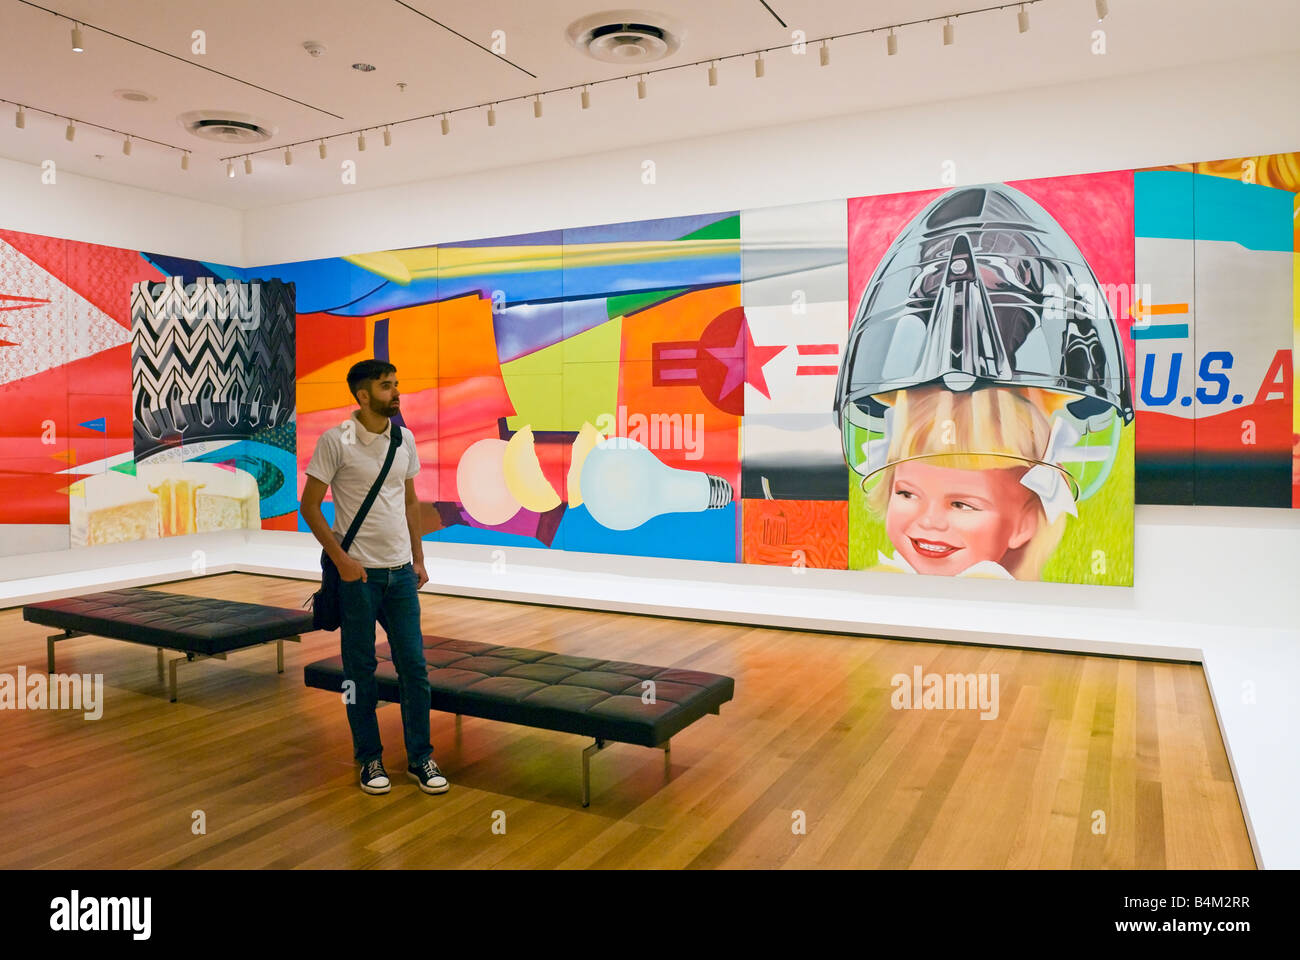 new york city moma the museum of modern art f 111 by artist james stock photo 20110267 alamy. Black Bedroom Furniture Sets. Home Design Ideas